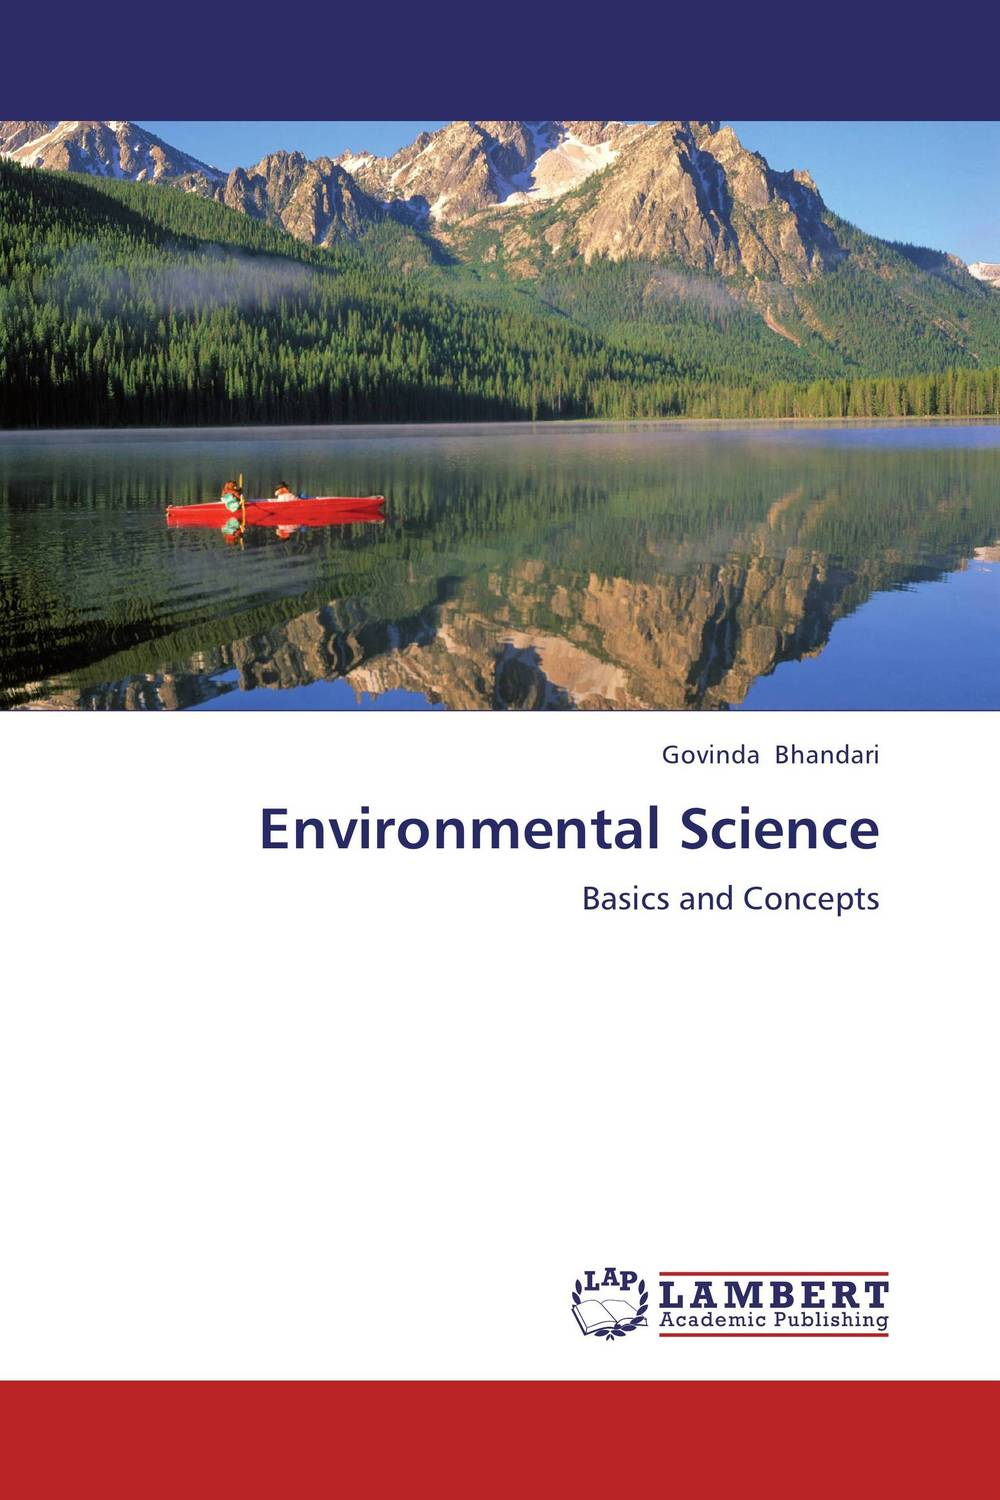 Environmental Science environment science issues solutions